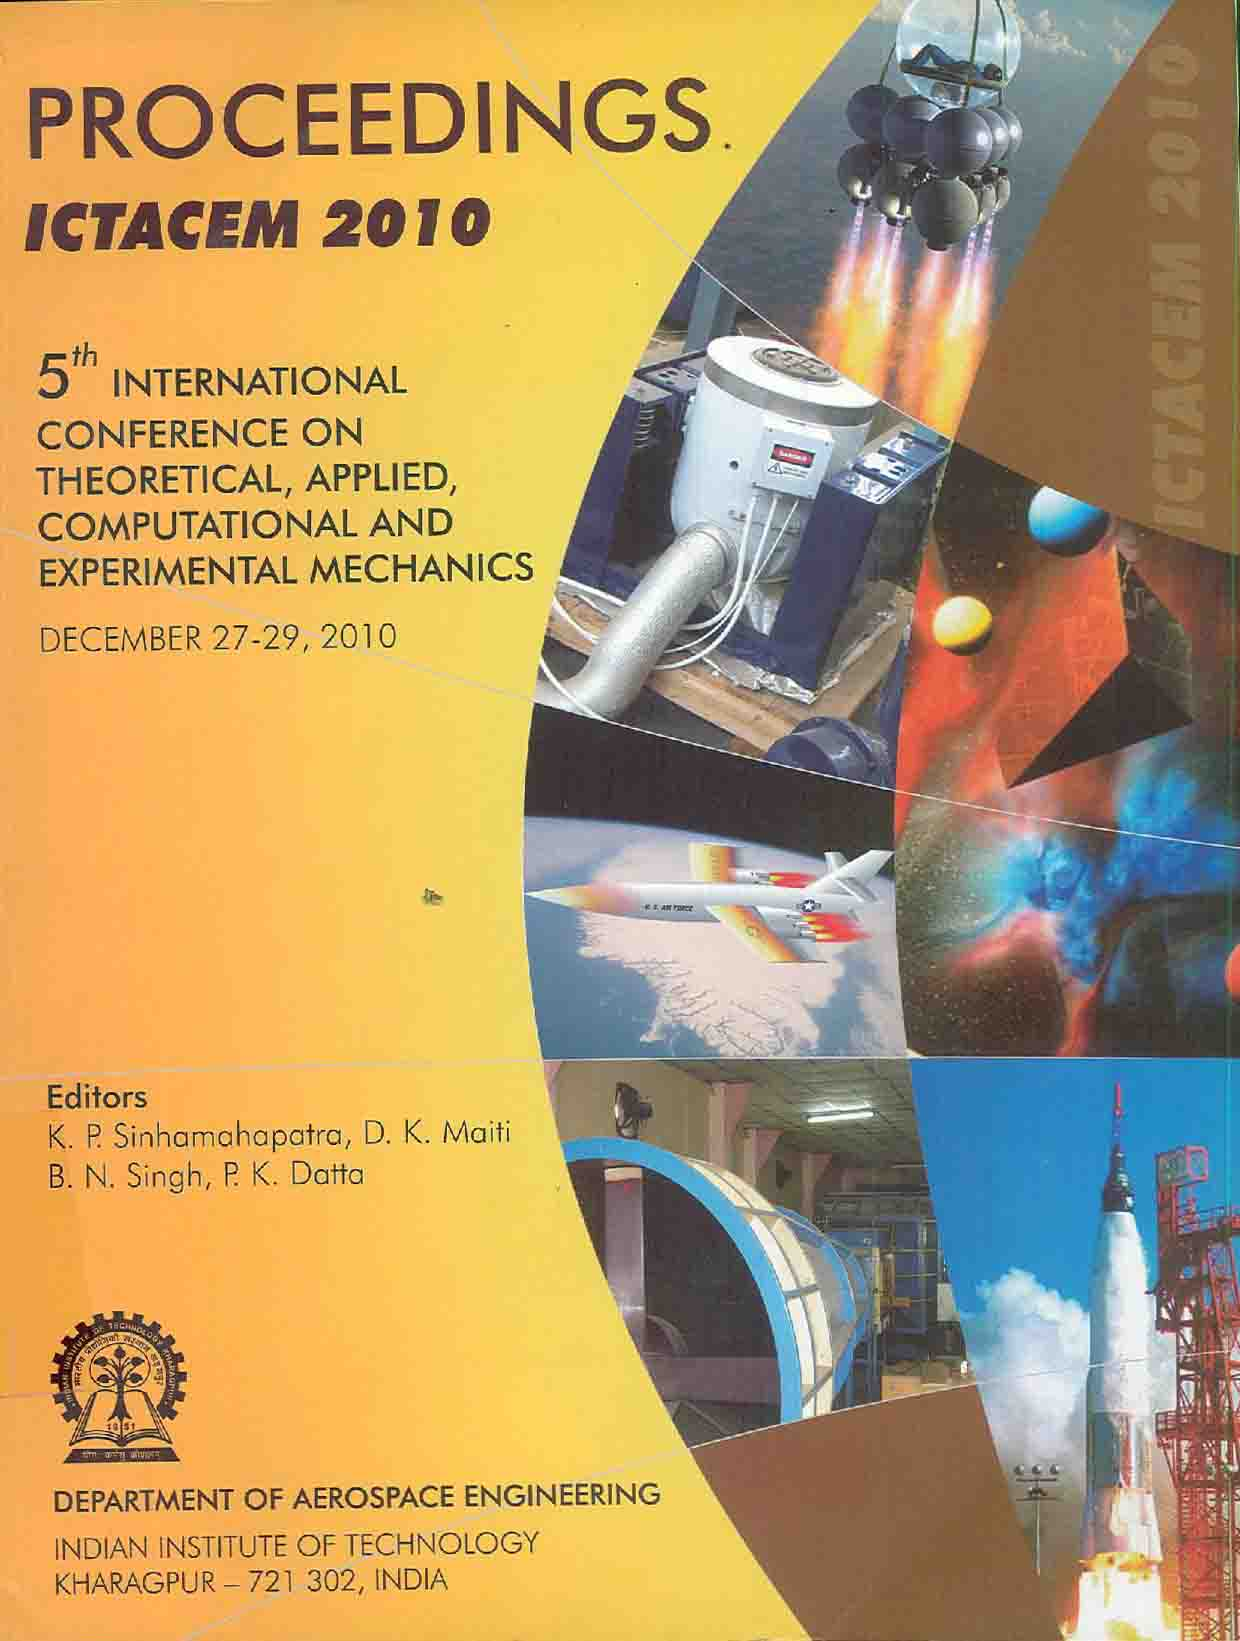 Proceedings ICTACEM 2010 : 5th International conference on Theoretical, Applied, Computational and Experimental Mechanics December 27-29, 2010